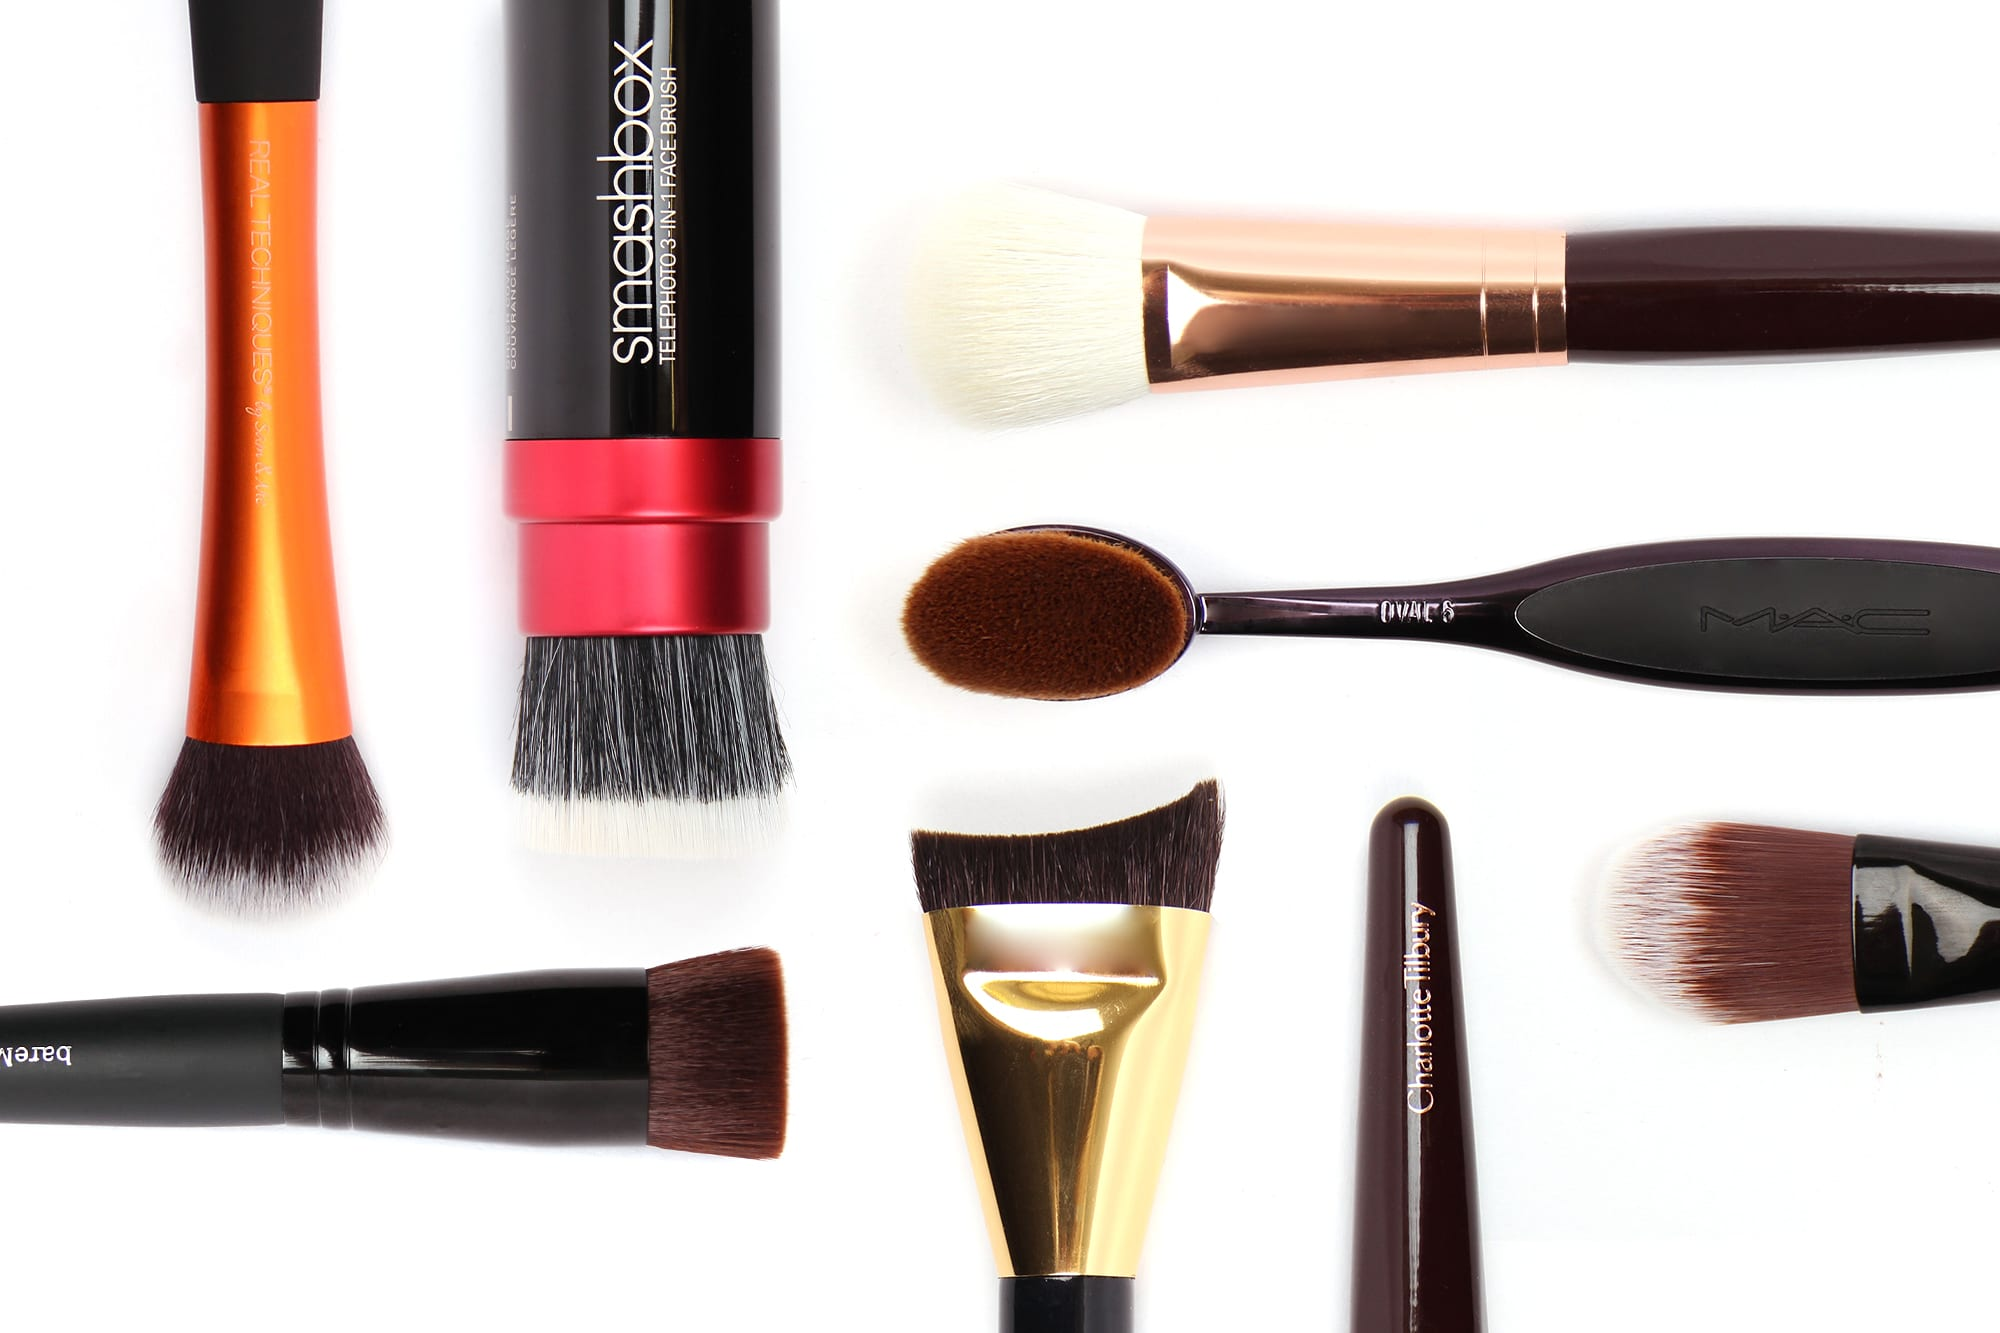 The Best Foundation Brushes For A Flawless Finish